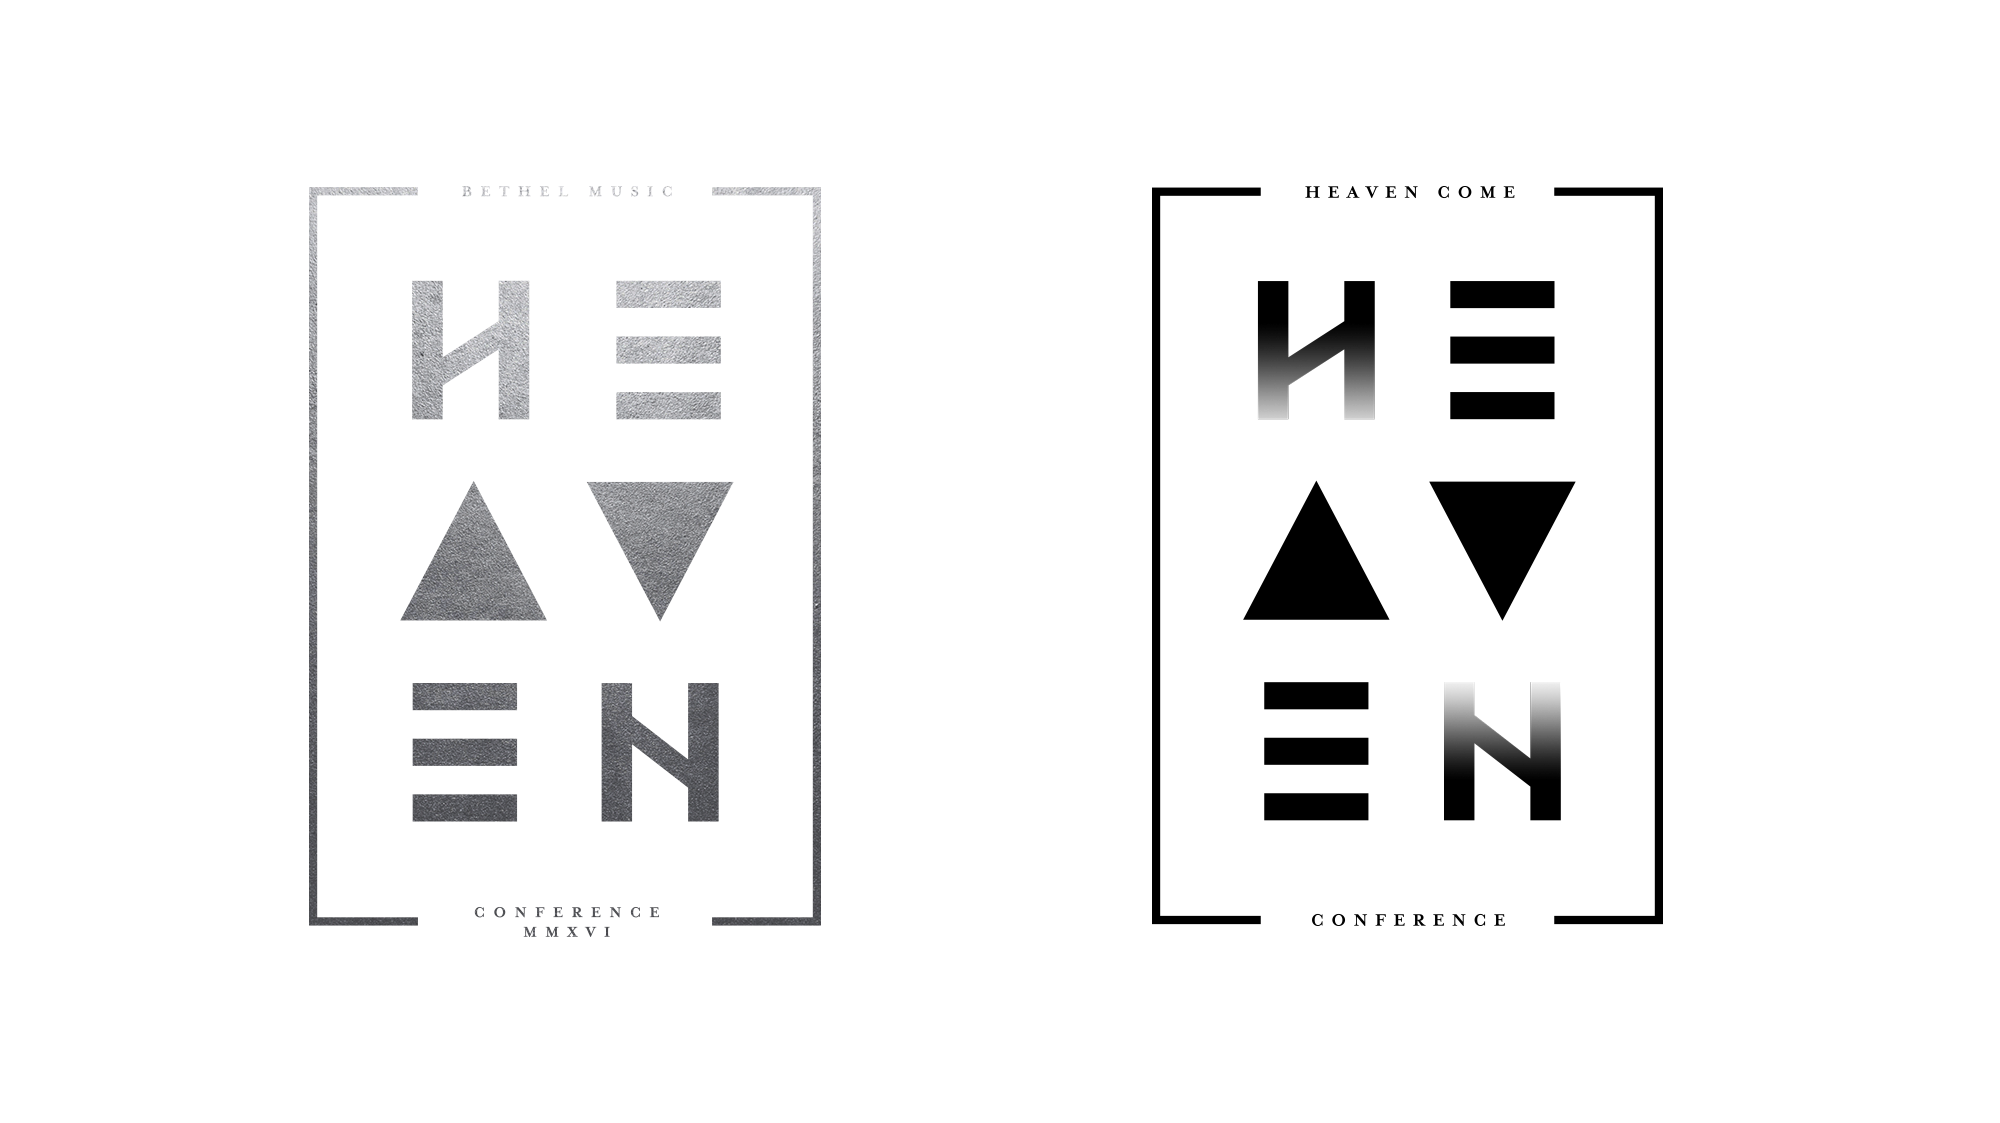 """Logo development for """"Heaven Come Conference"""". LEFT - Original logo designed in NZ, RIGHT - slightly tweaked with gradient letters."""